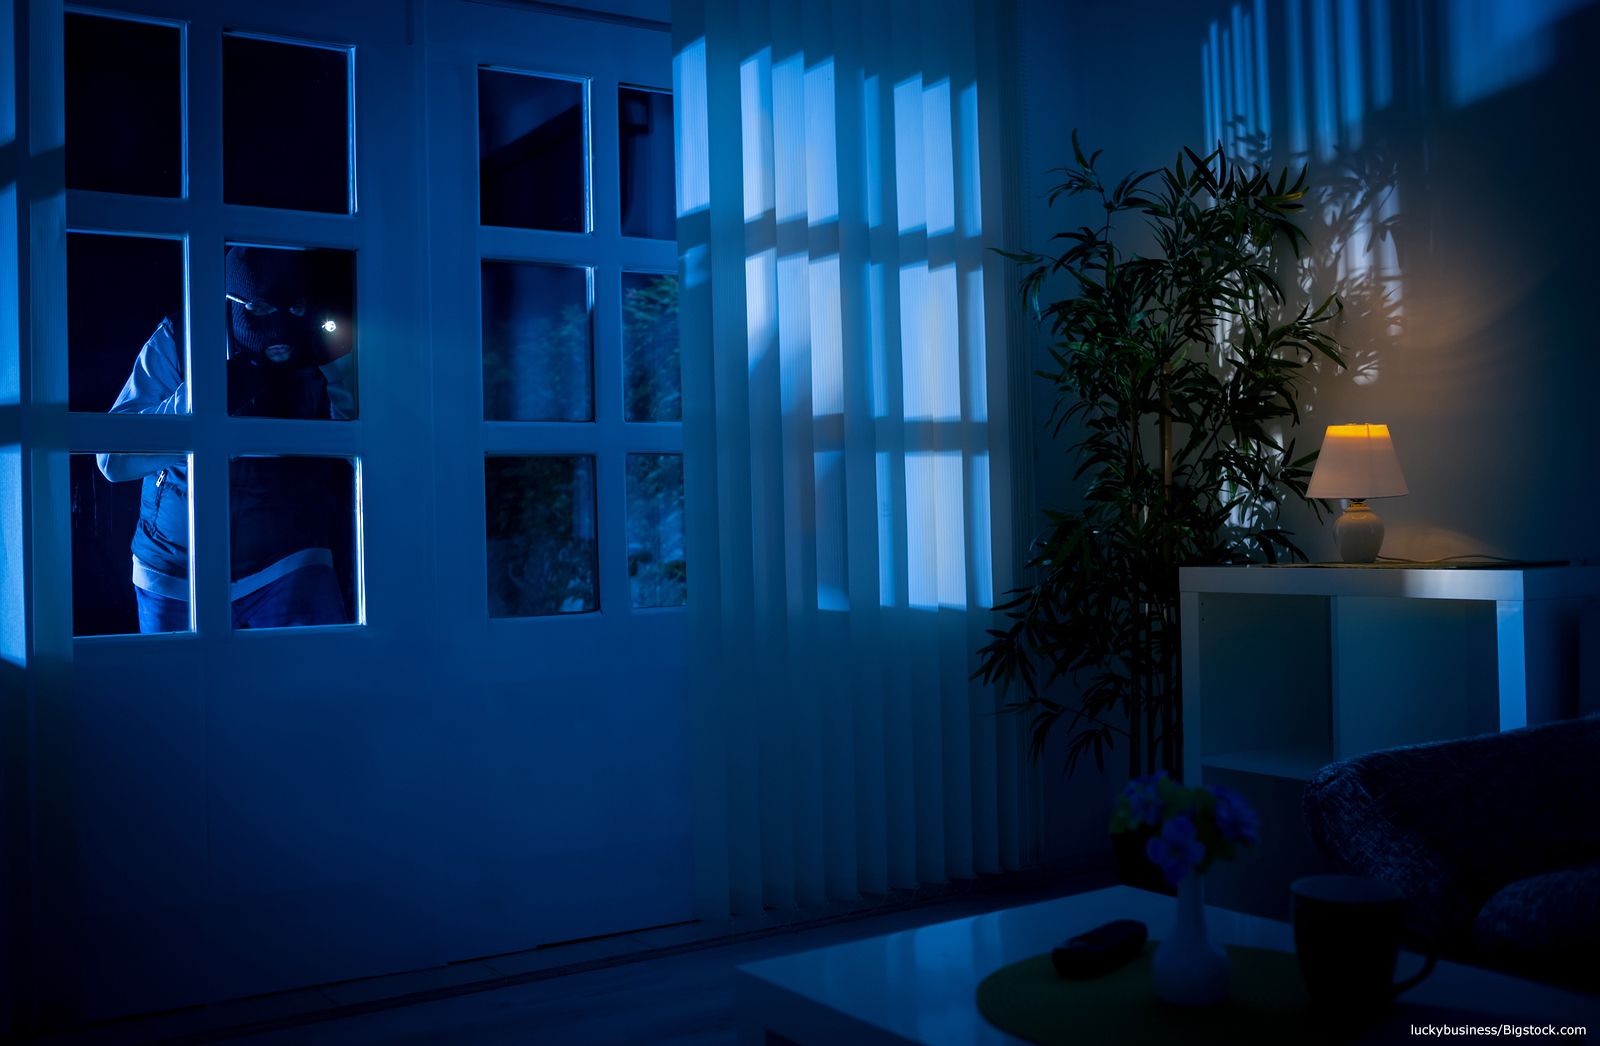 FIVE Things You Should Do Immediately After Your Home is Burglarized